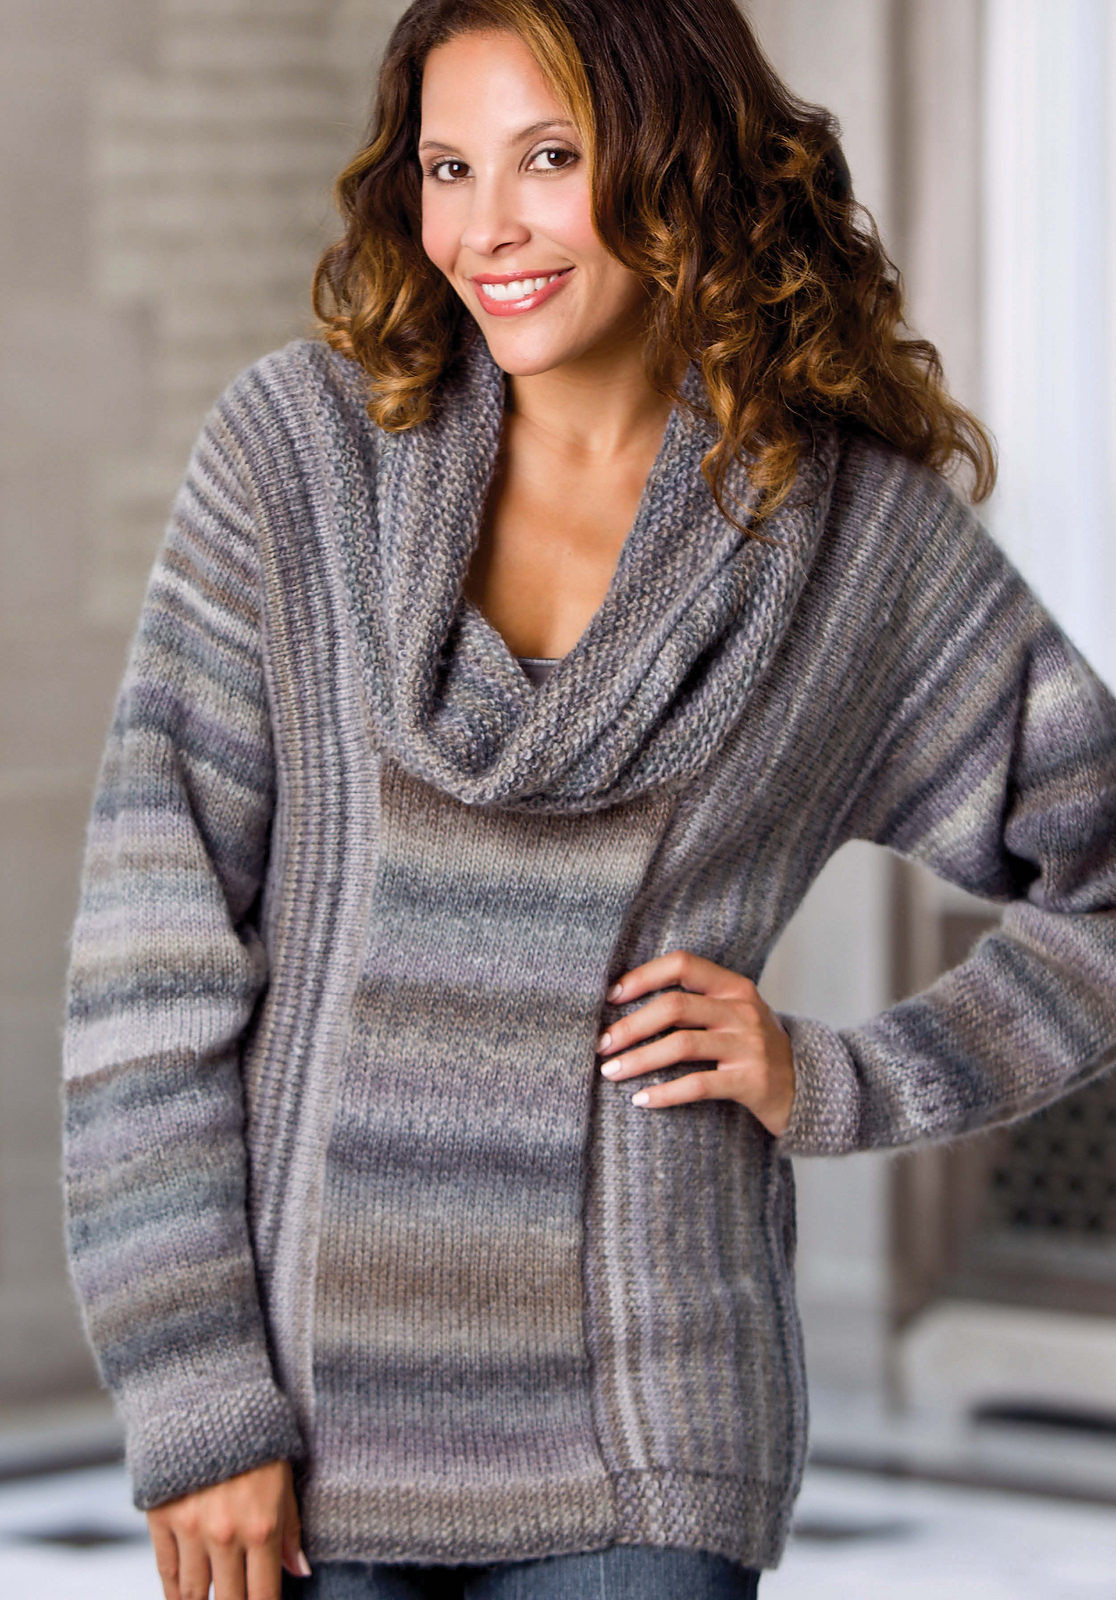 Beautiful Easy Sweater Knitting Patterns Easy Knit Sweater Of Brilliant 50 Images Easy Knit Sweater